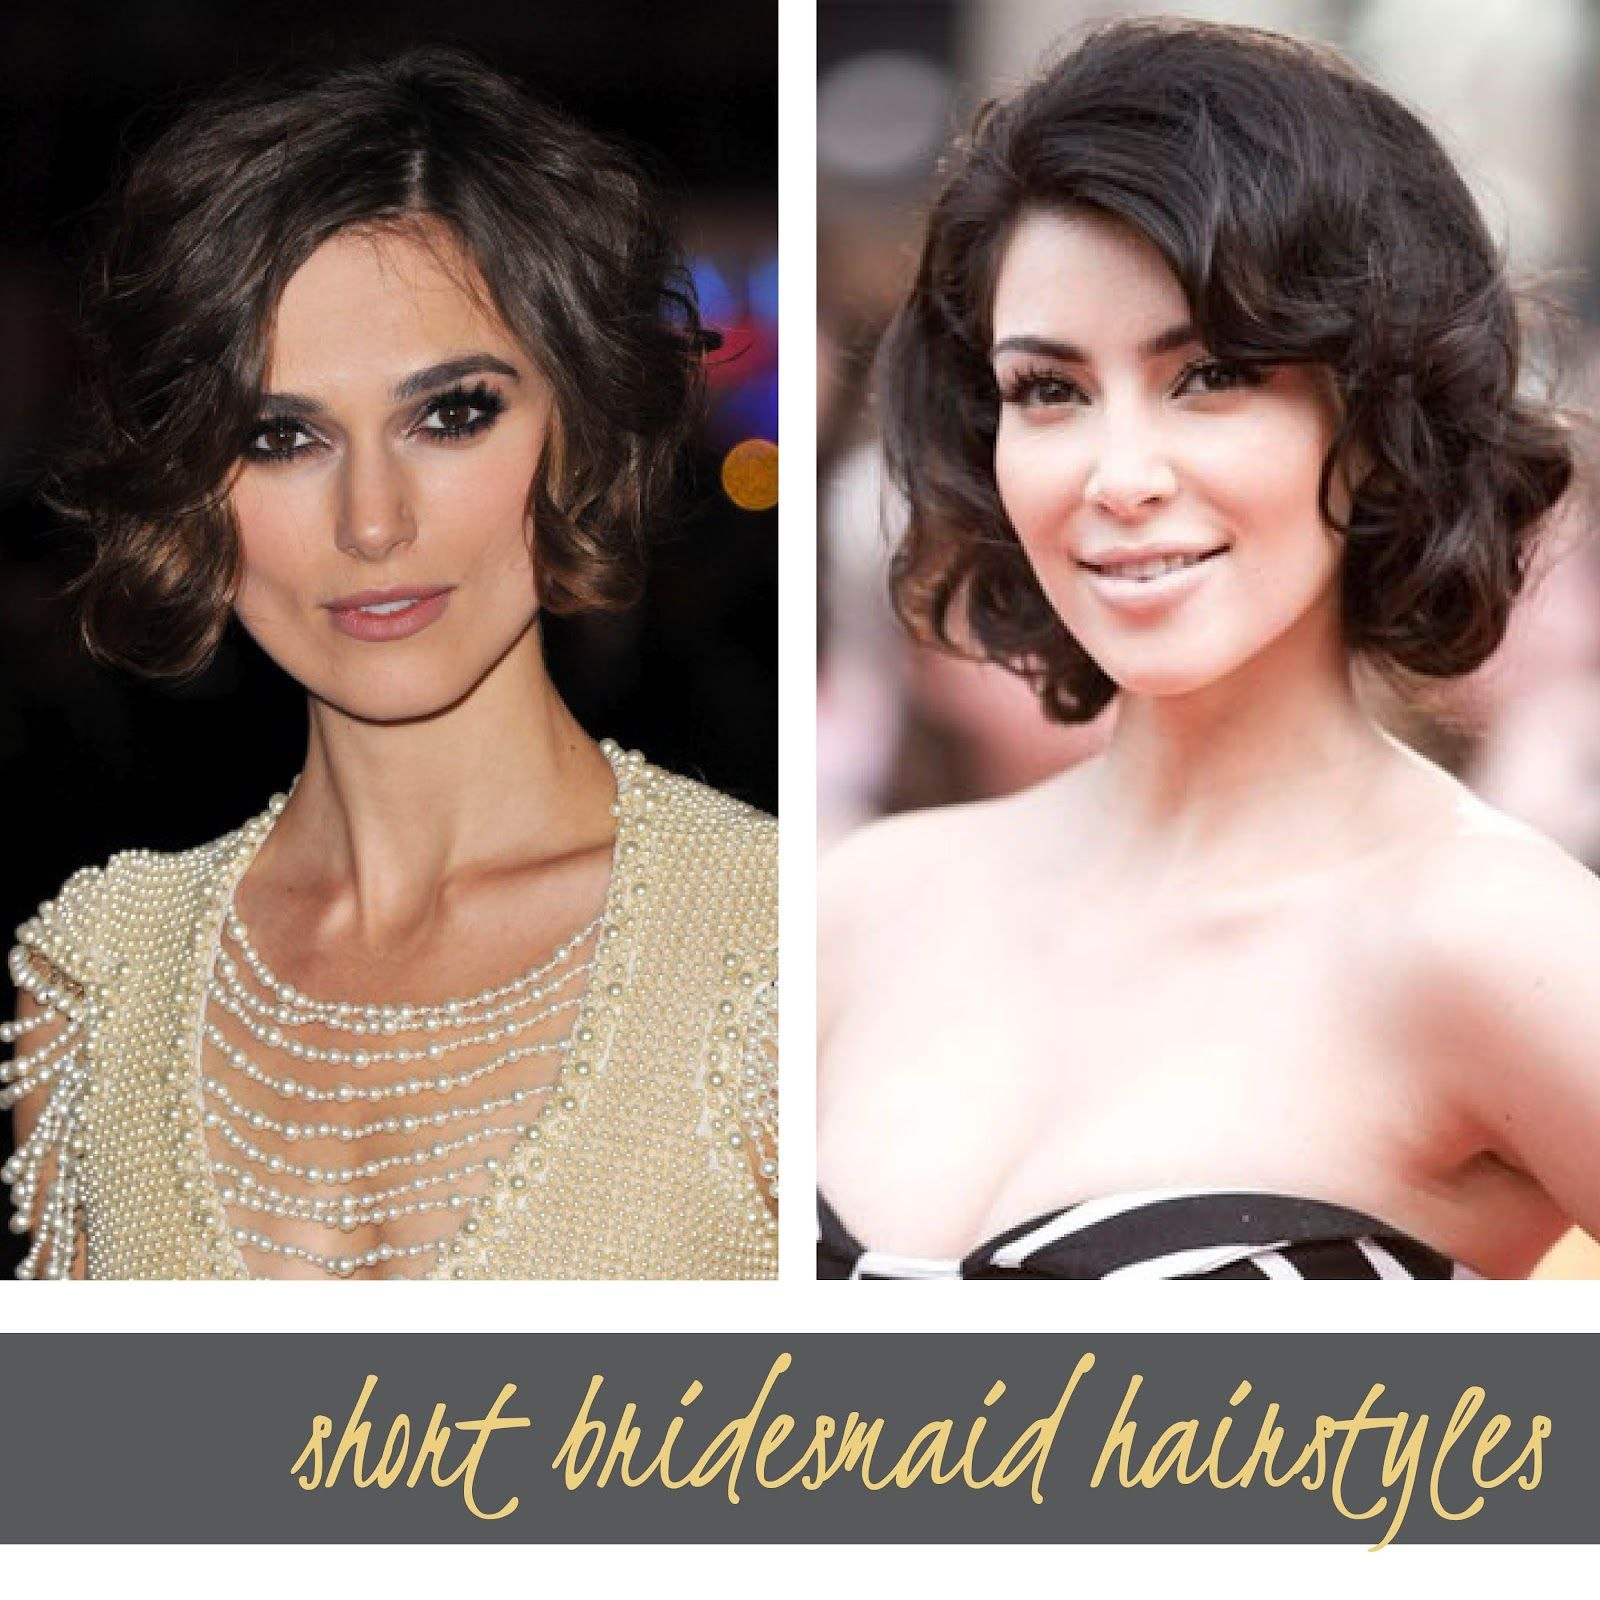 Astounding Side Ponytail Curly Short Hairstyles For Wedding Bridesmaid With Hairstyles For Women Draintrainus